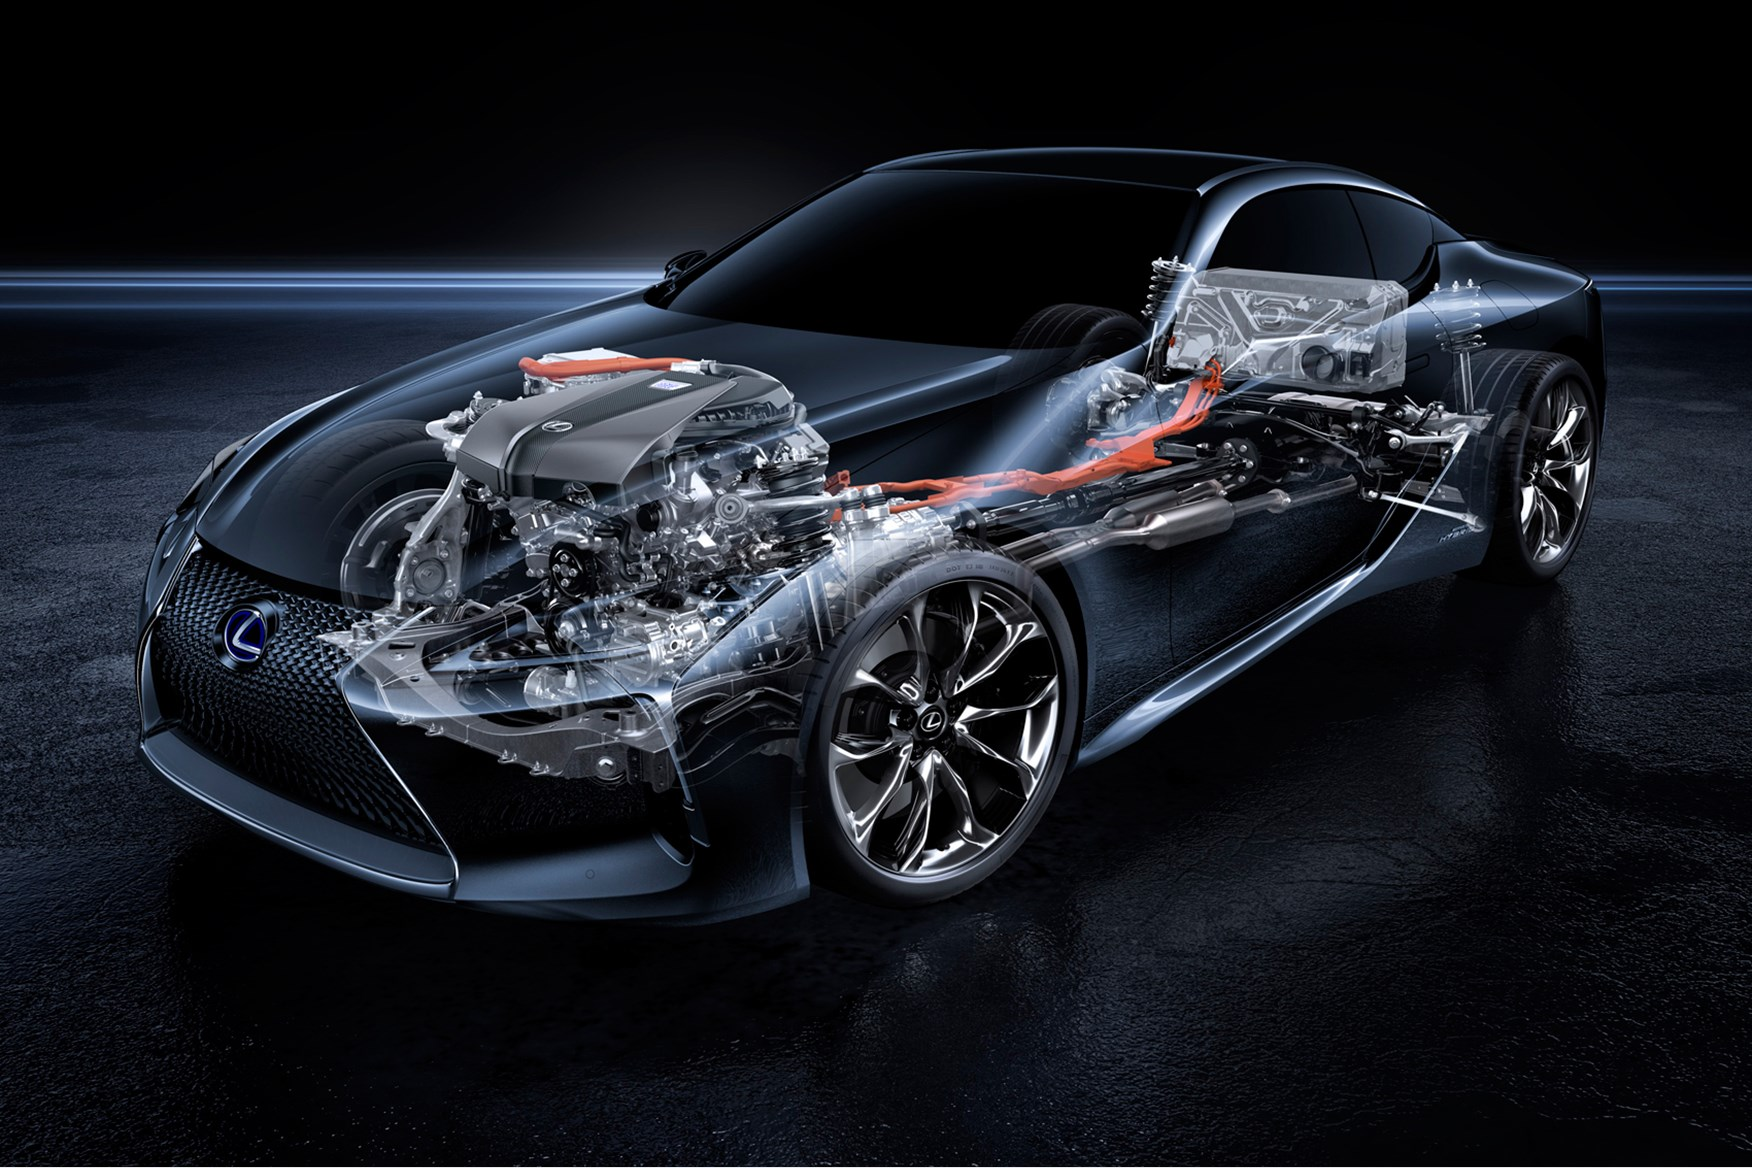 Rx 350 Engine Diagram Another Blog About Wiring 2007 Lexus Es Lc500h New Coupe Gets Clever Complex Hybrid Tech 2010